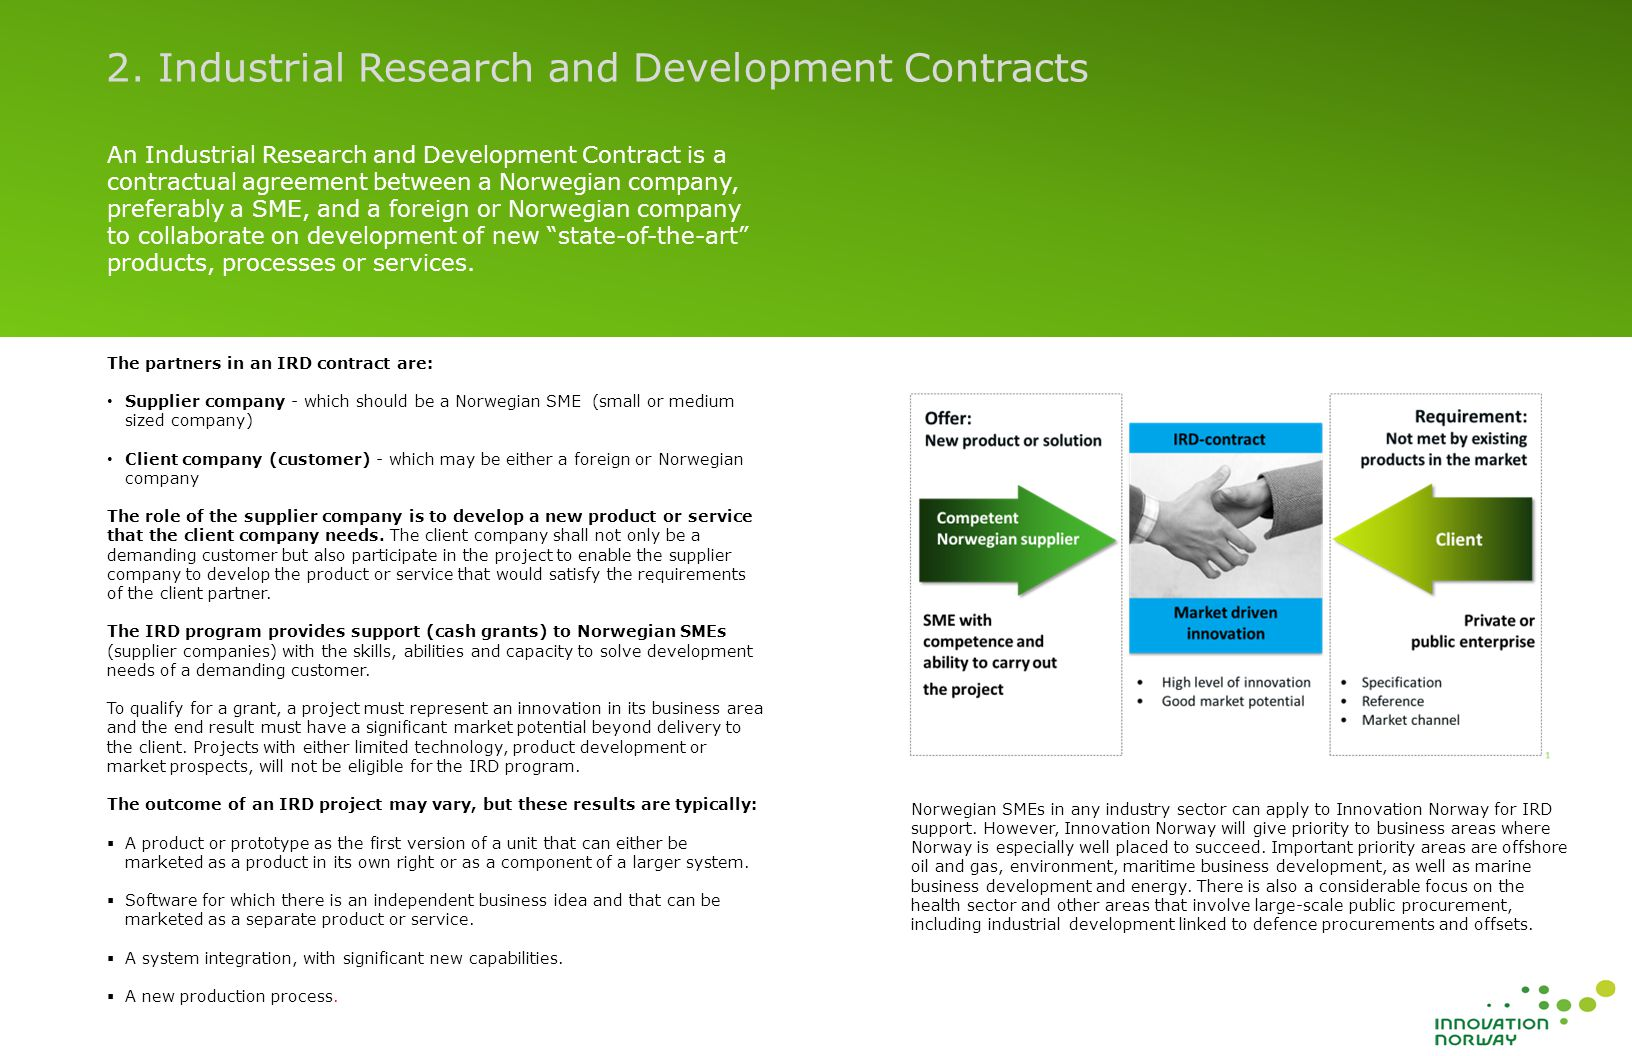 An Industrial Research and Development Contract is a contractual agreement between a Norwegian company, preferably a SME, and a foreign or Norwegian company to collaborate on development of new state-of-the-art products, processes or services.